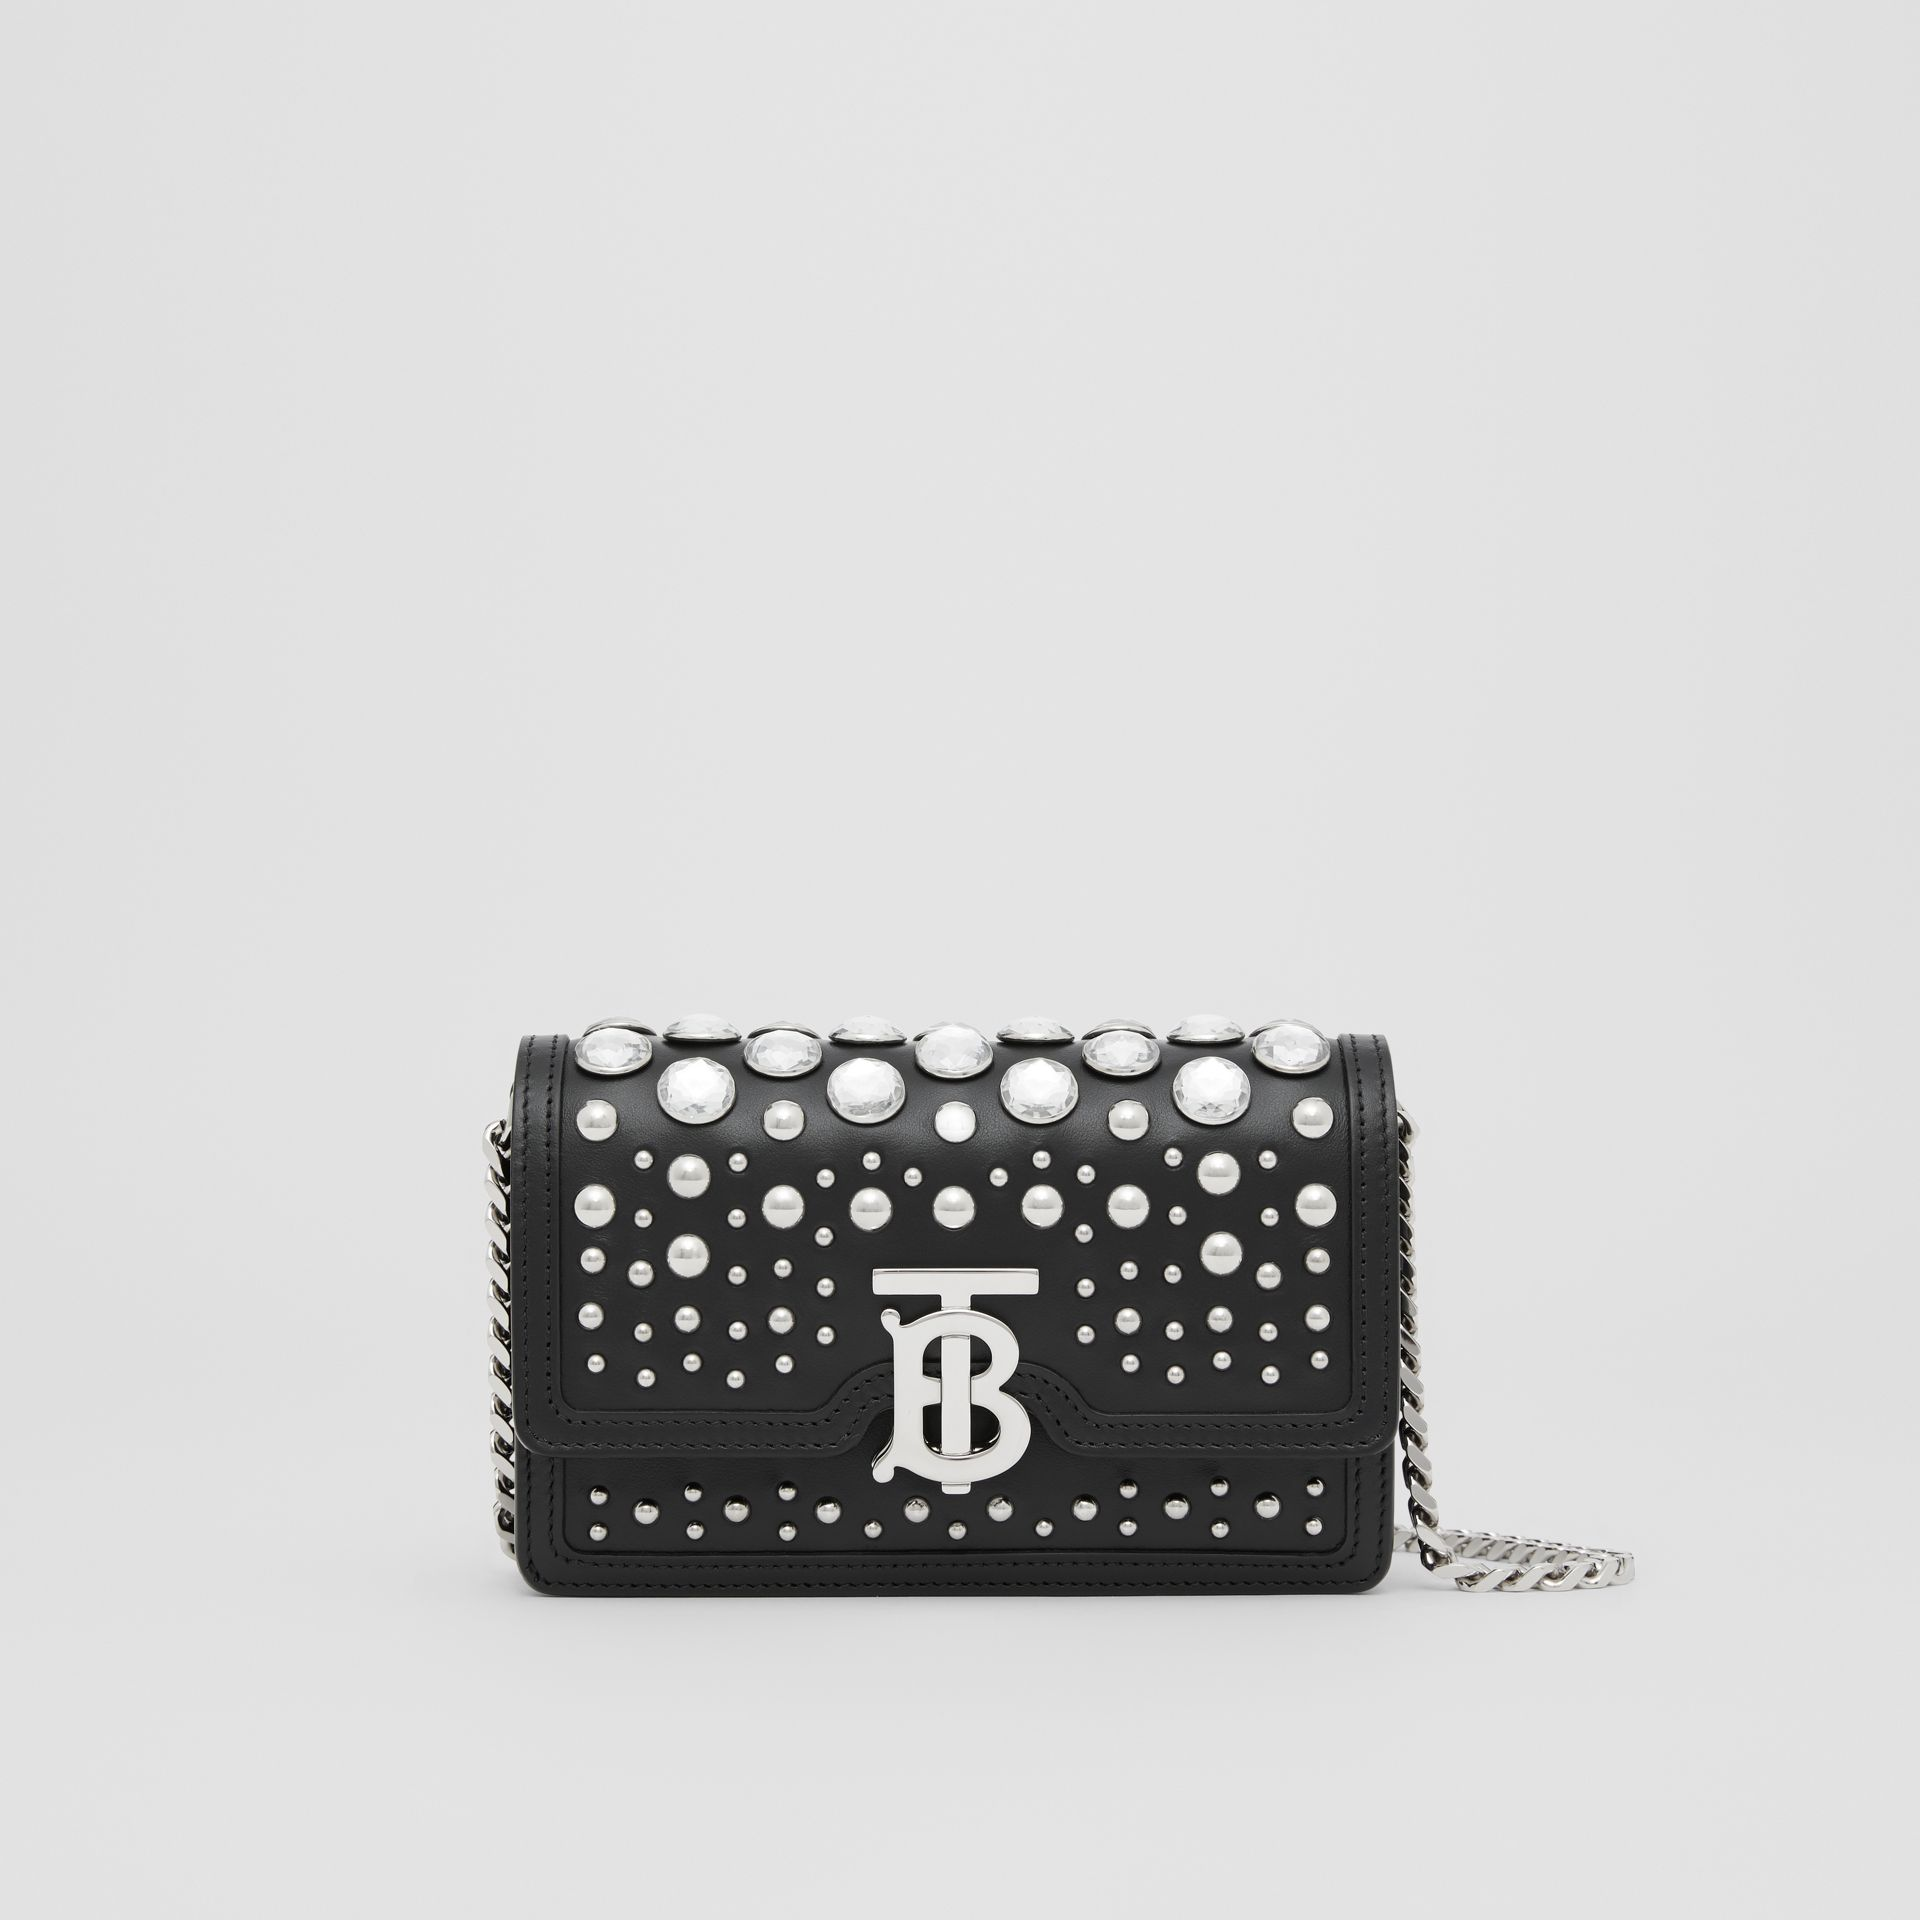 Mini Embellished Leather Shoulder Bag in Black - Women | Burberry - gallery image 0